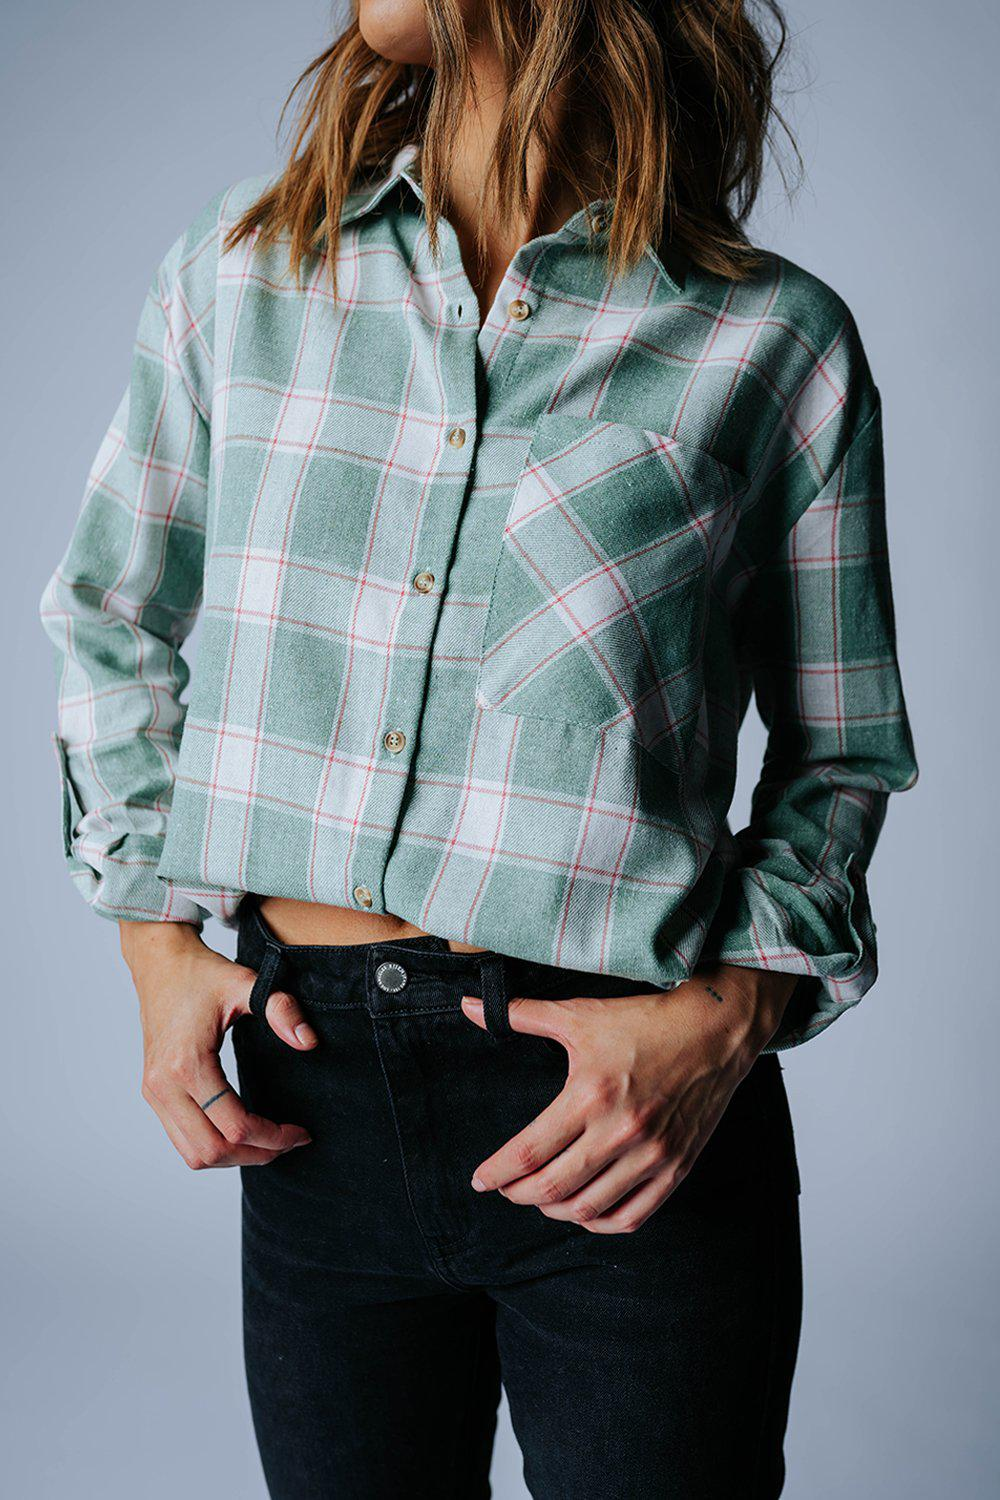 best_seller, Block Party Flannel Top in Green, Top, women's clothing, dresses, skirts, coats, jackets, shoes, boots, tops, tee shirts, jeans, free people, levi's, rollas, jumpsuits, bottoms, tops, sweaters, pullovers, pants, shorts, sweats,.